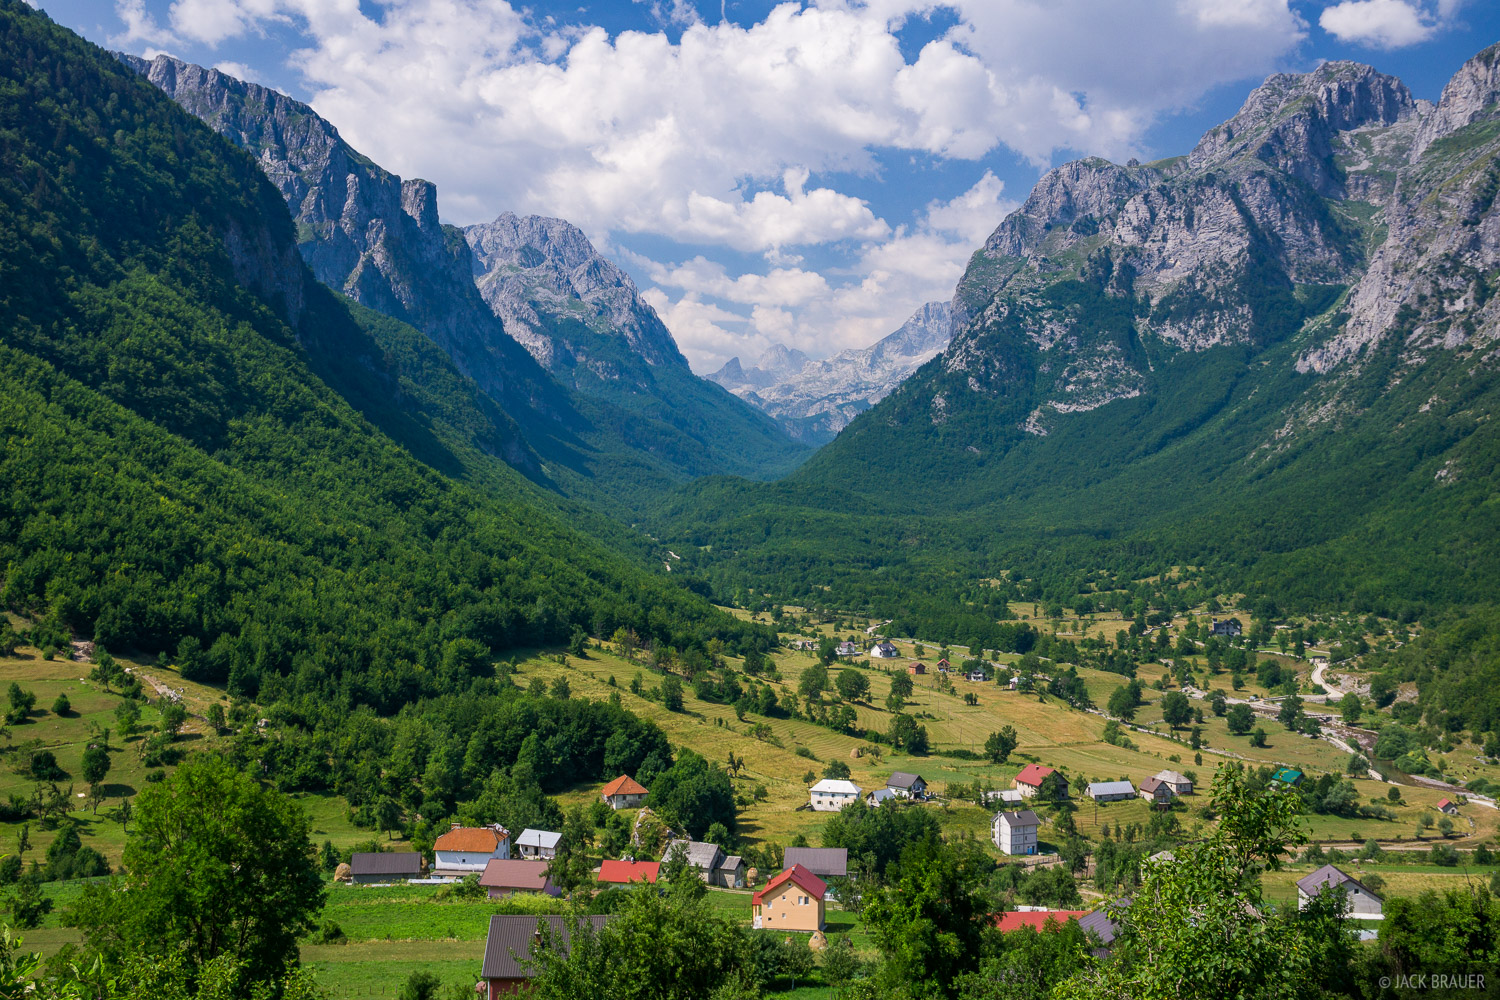 The village of Vusanje in the spectacular Ropojana Valley, Montenegro.